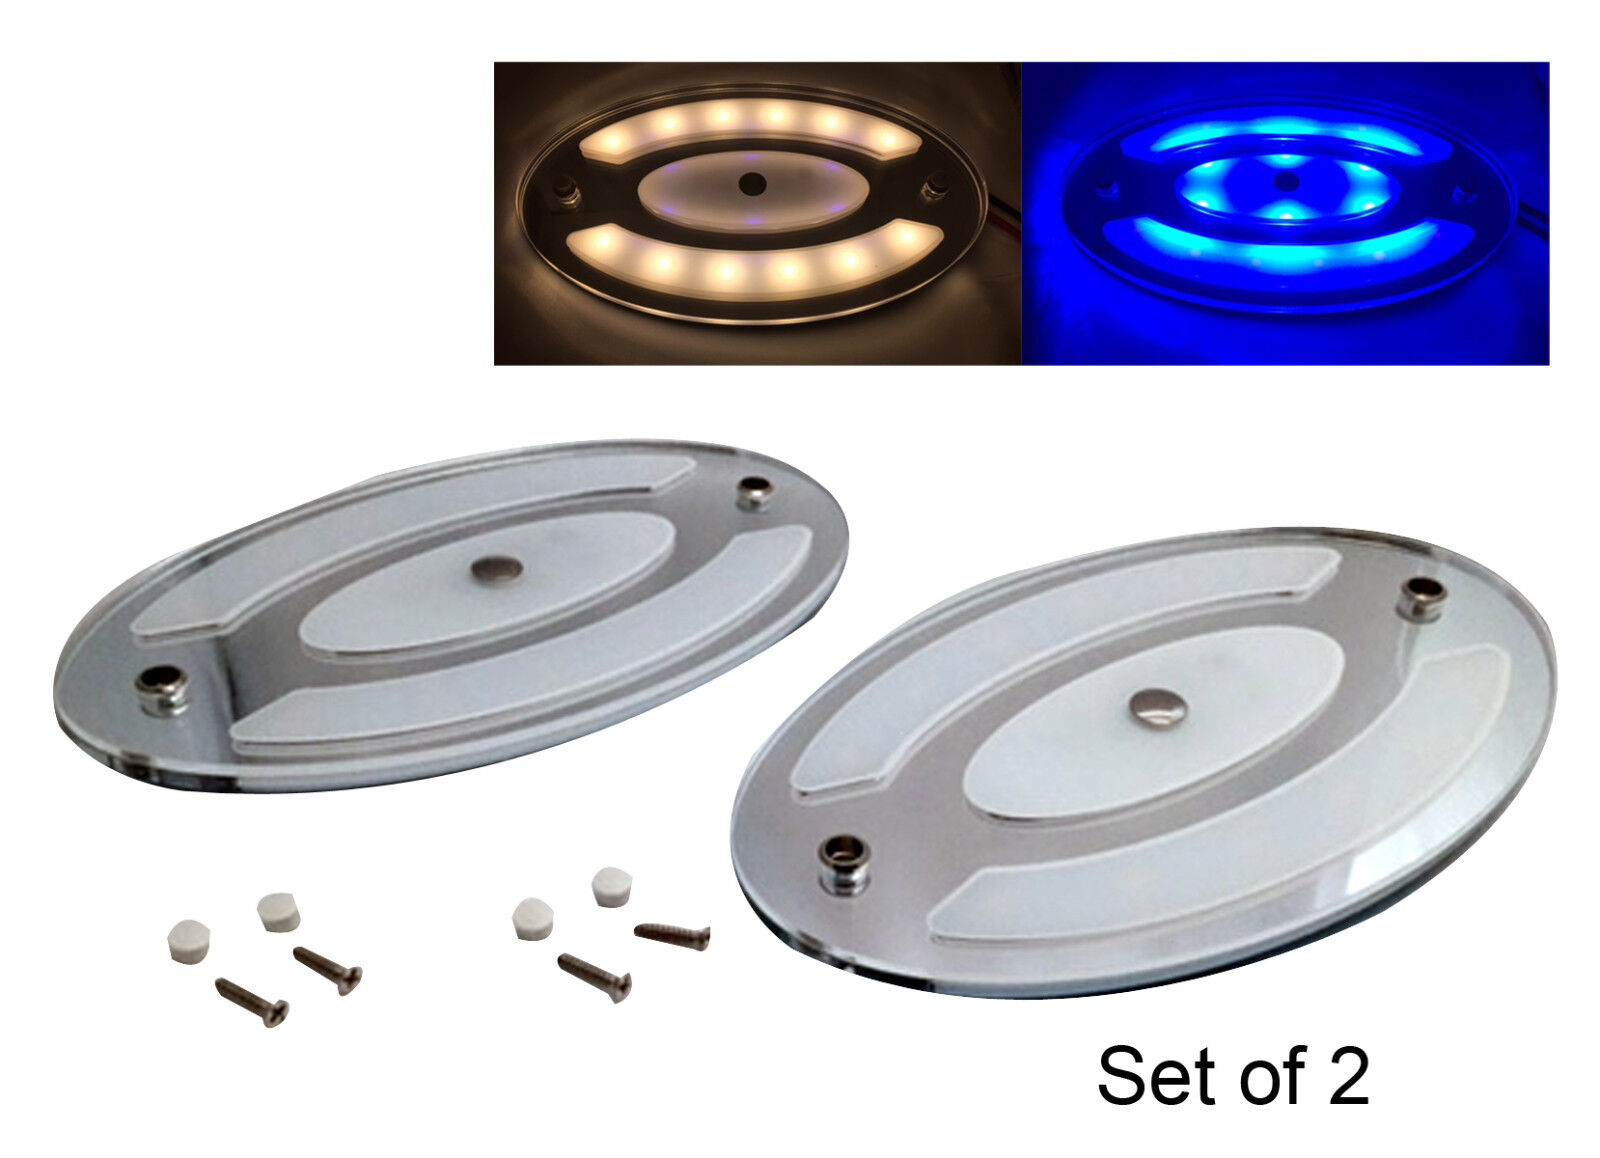 Pactrade Marine Boat RV Auto 2 x Oval LED Ceiling Courtesy Light  Touch Switch